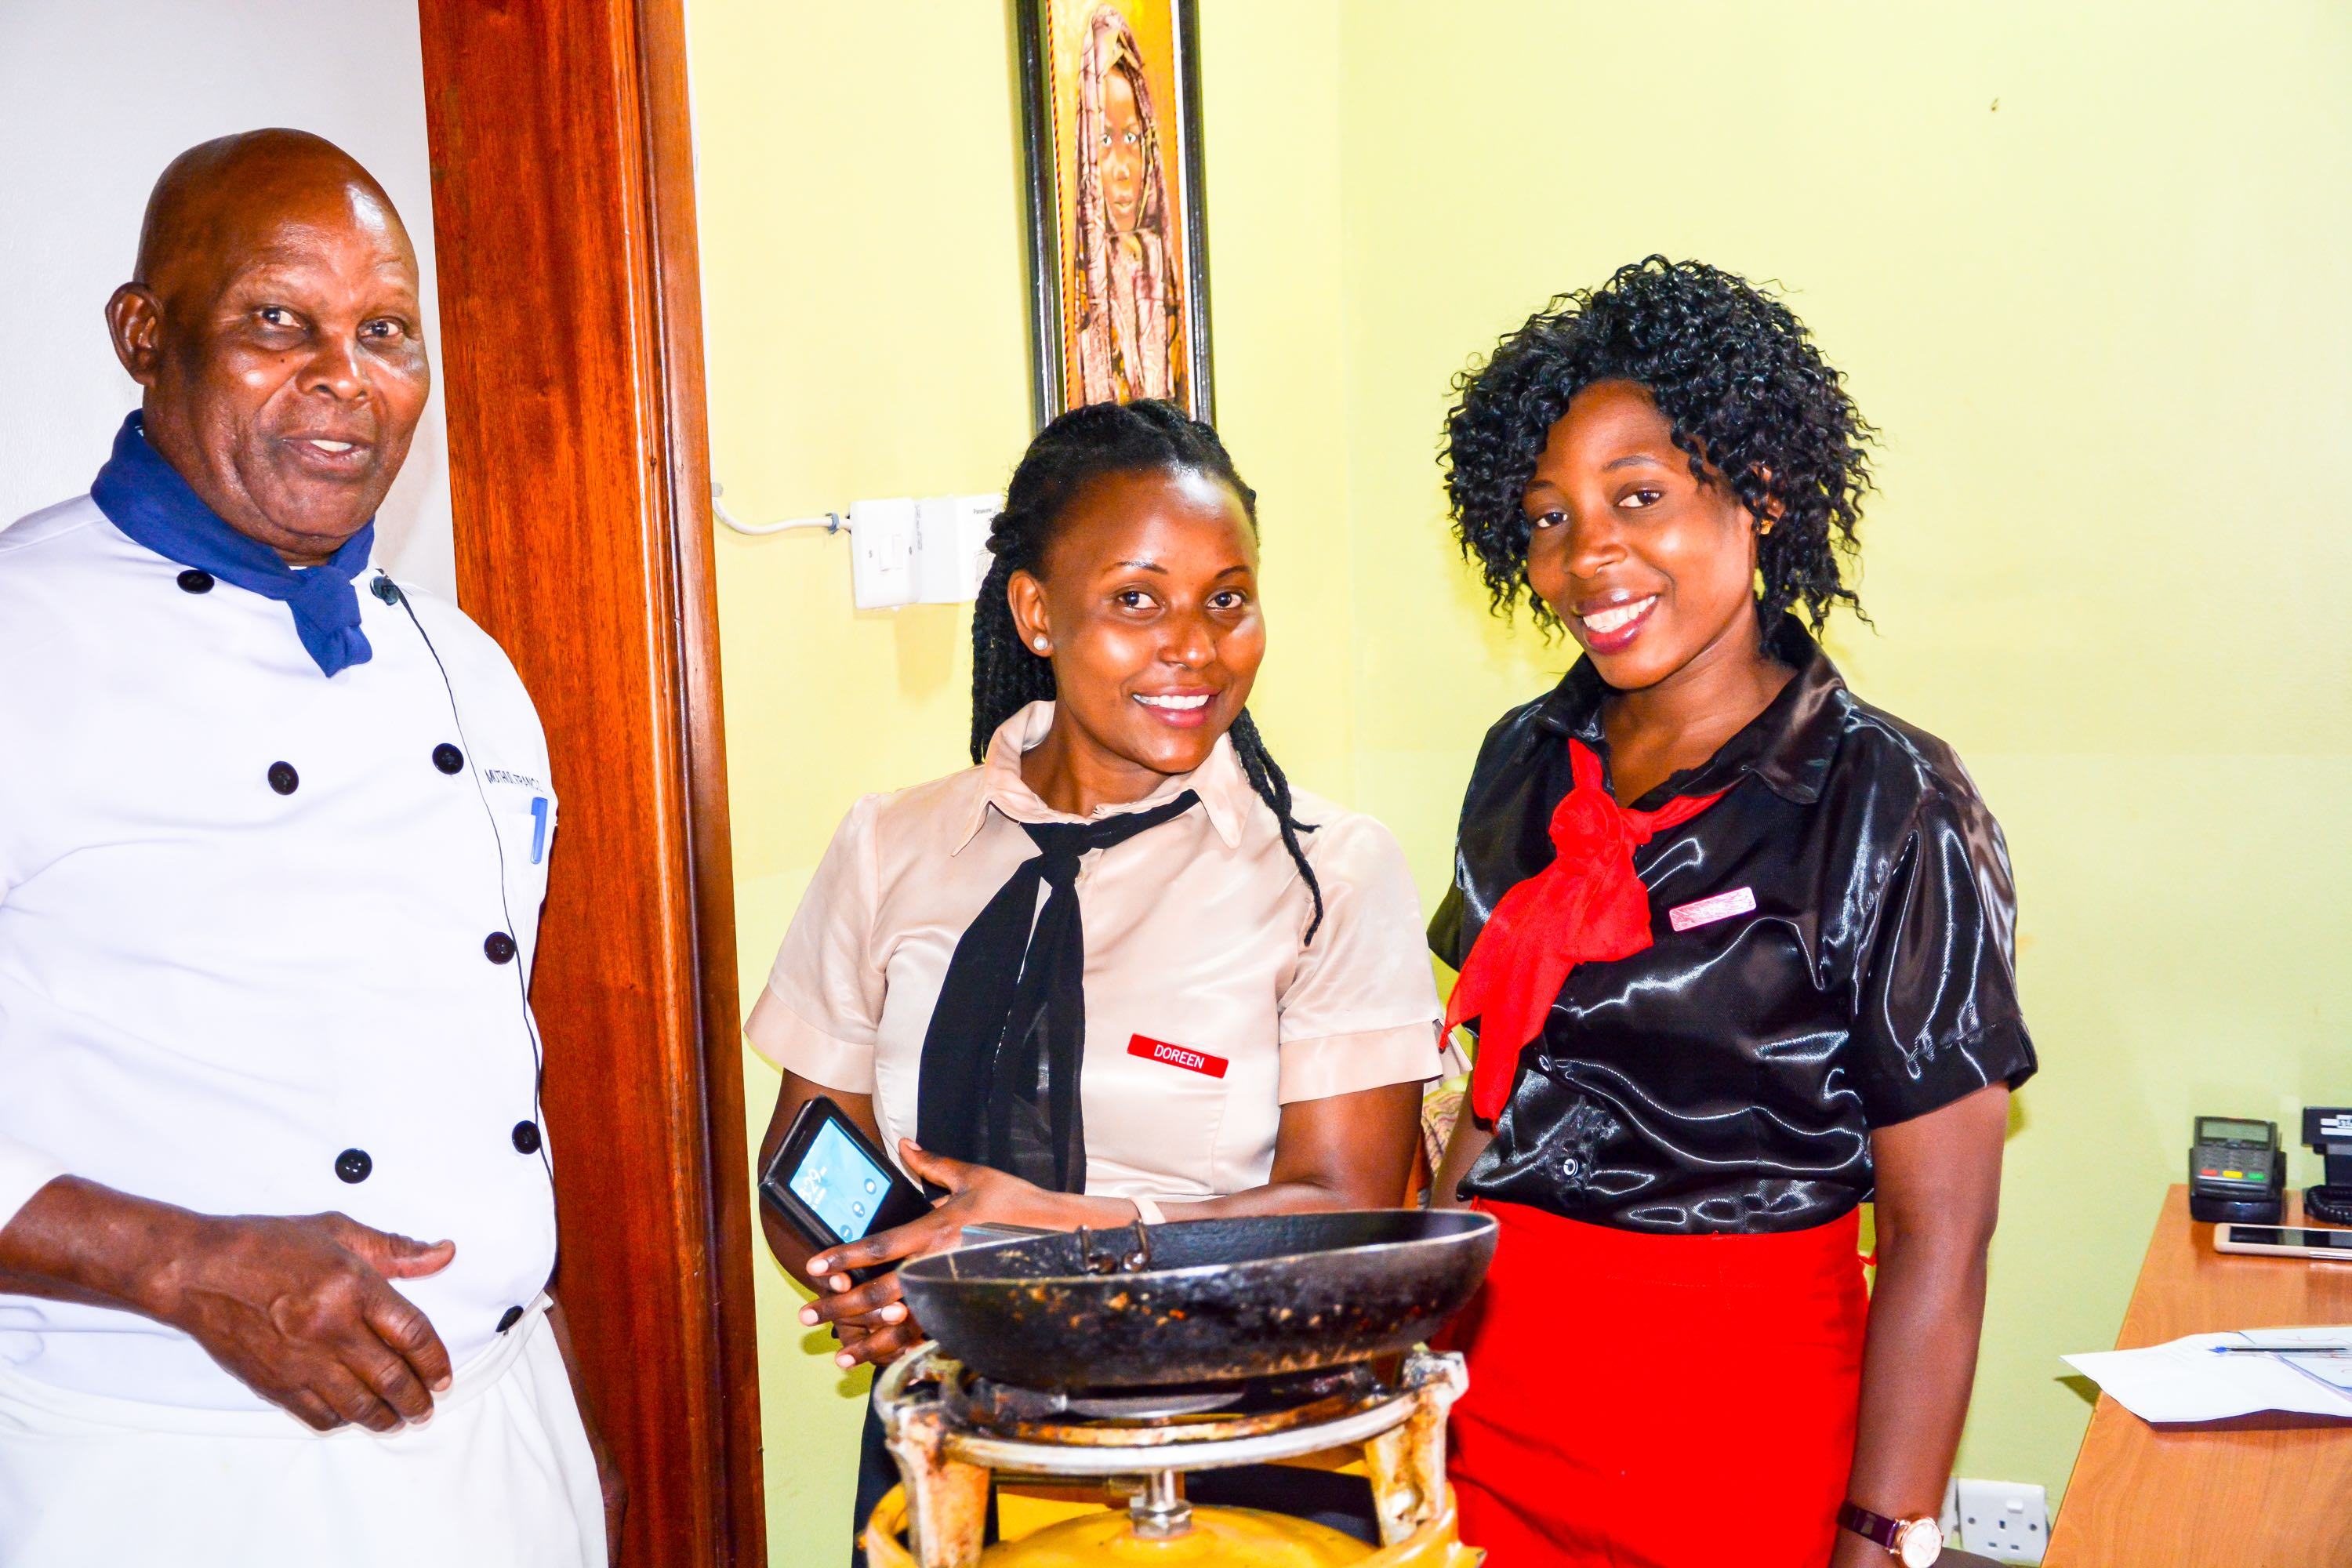 Chef Francis at Adonai Guesthouse in Muyenga along with Doreen and Loy